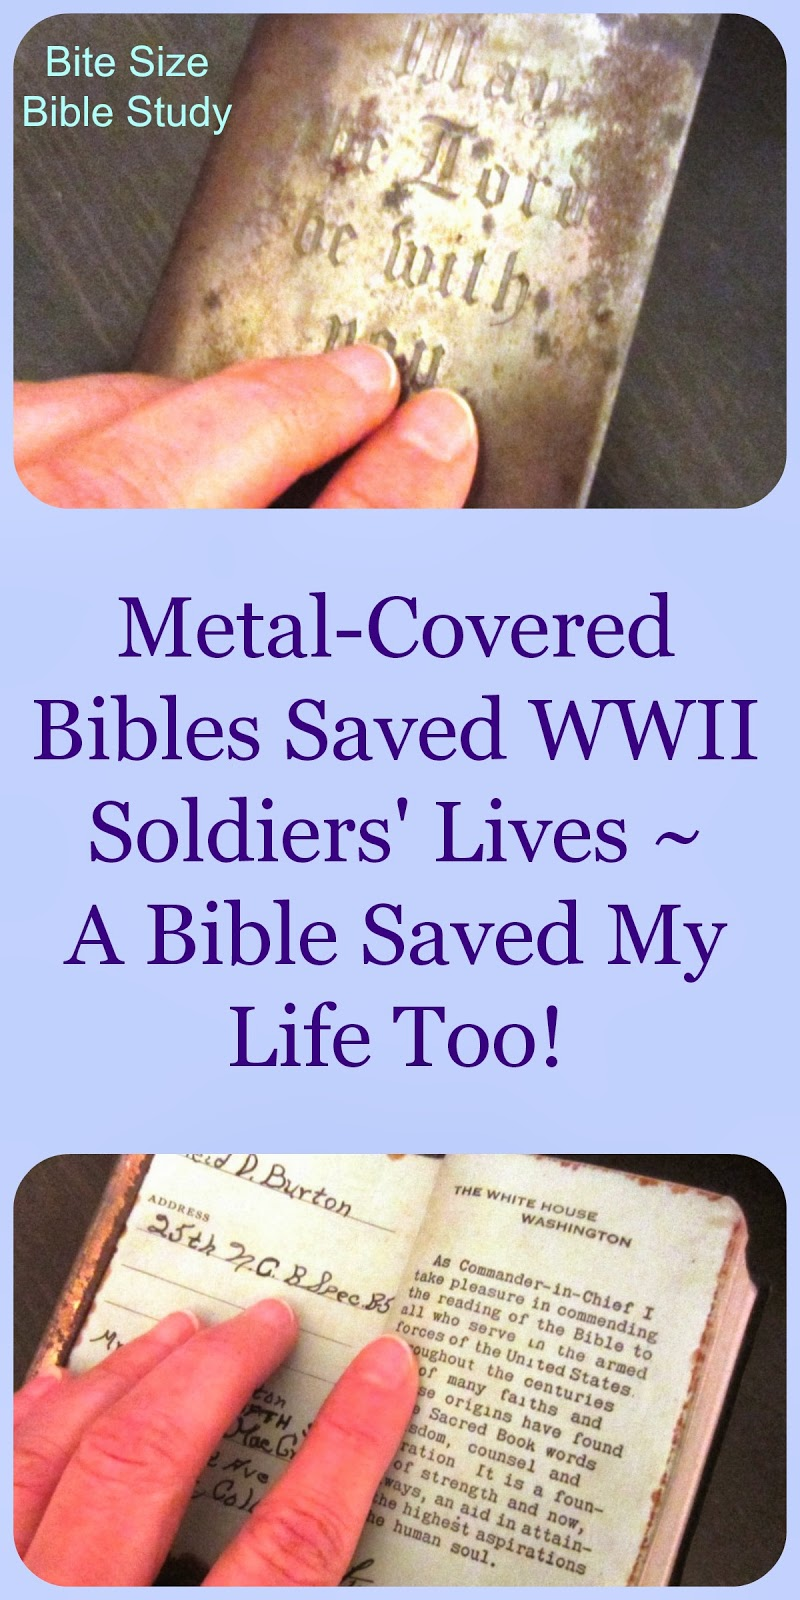 Bibles save soldiers' lives, Bibles save, WWII metal-covered Bibles